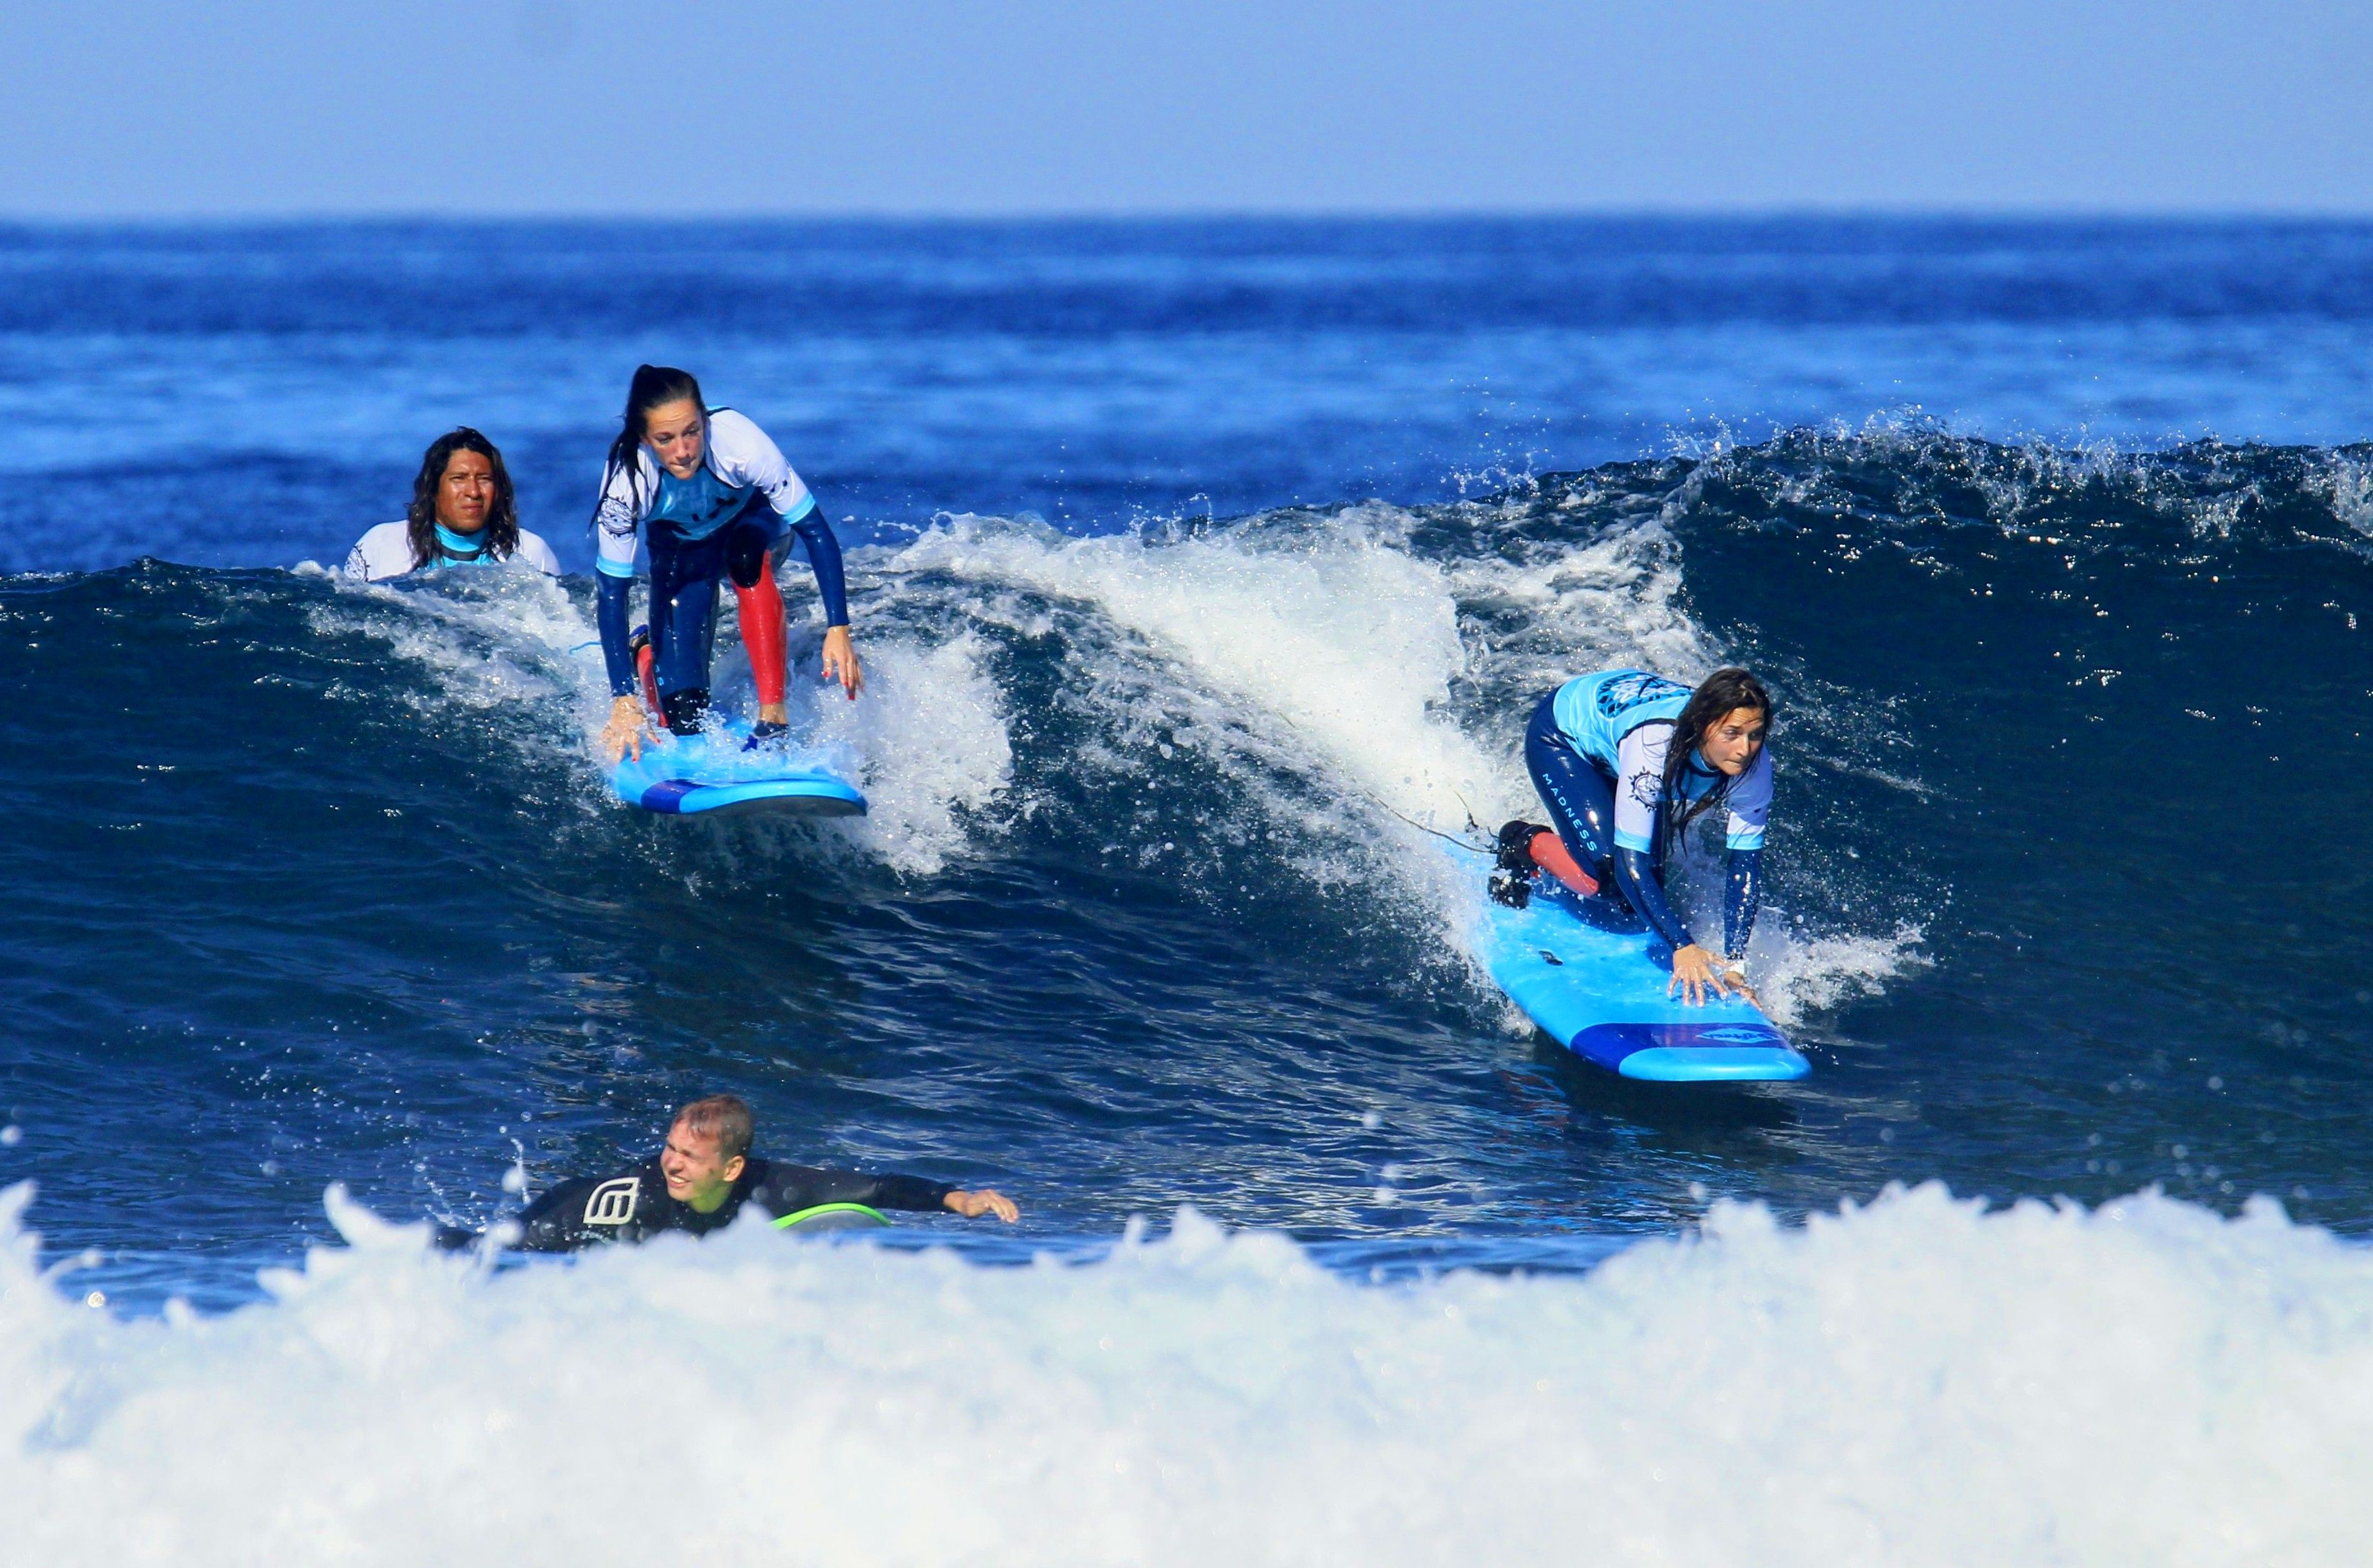 The Swedish girls riding her first wave.....